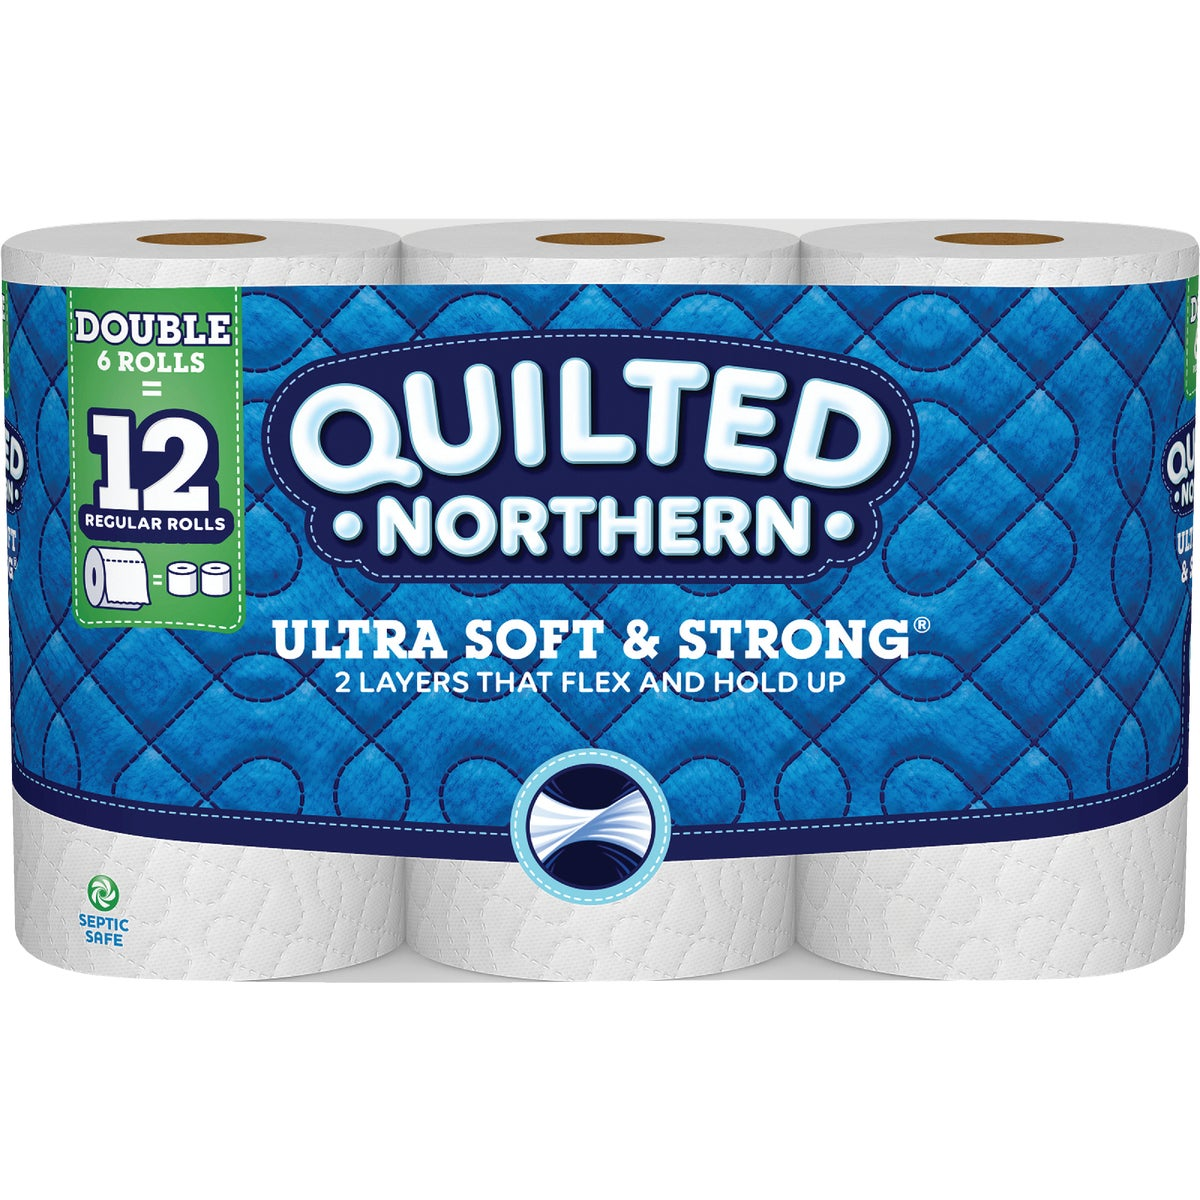 6ROLL QULTD NORTH TISSUE - 96362 by Georgia-pacific Corp